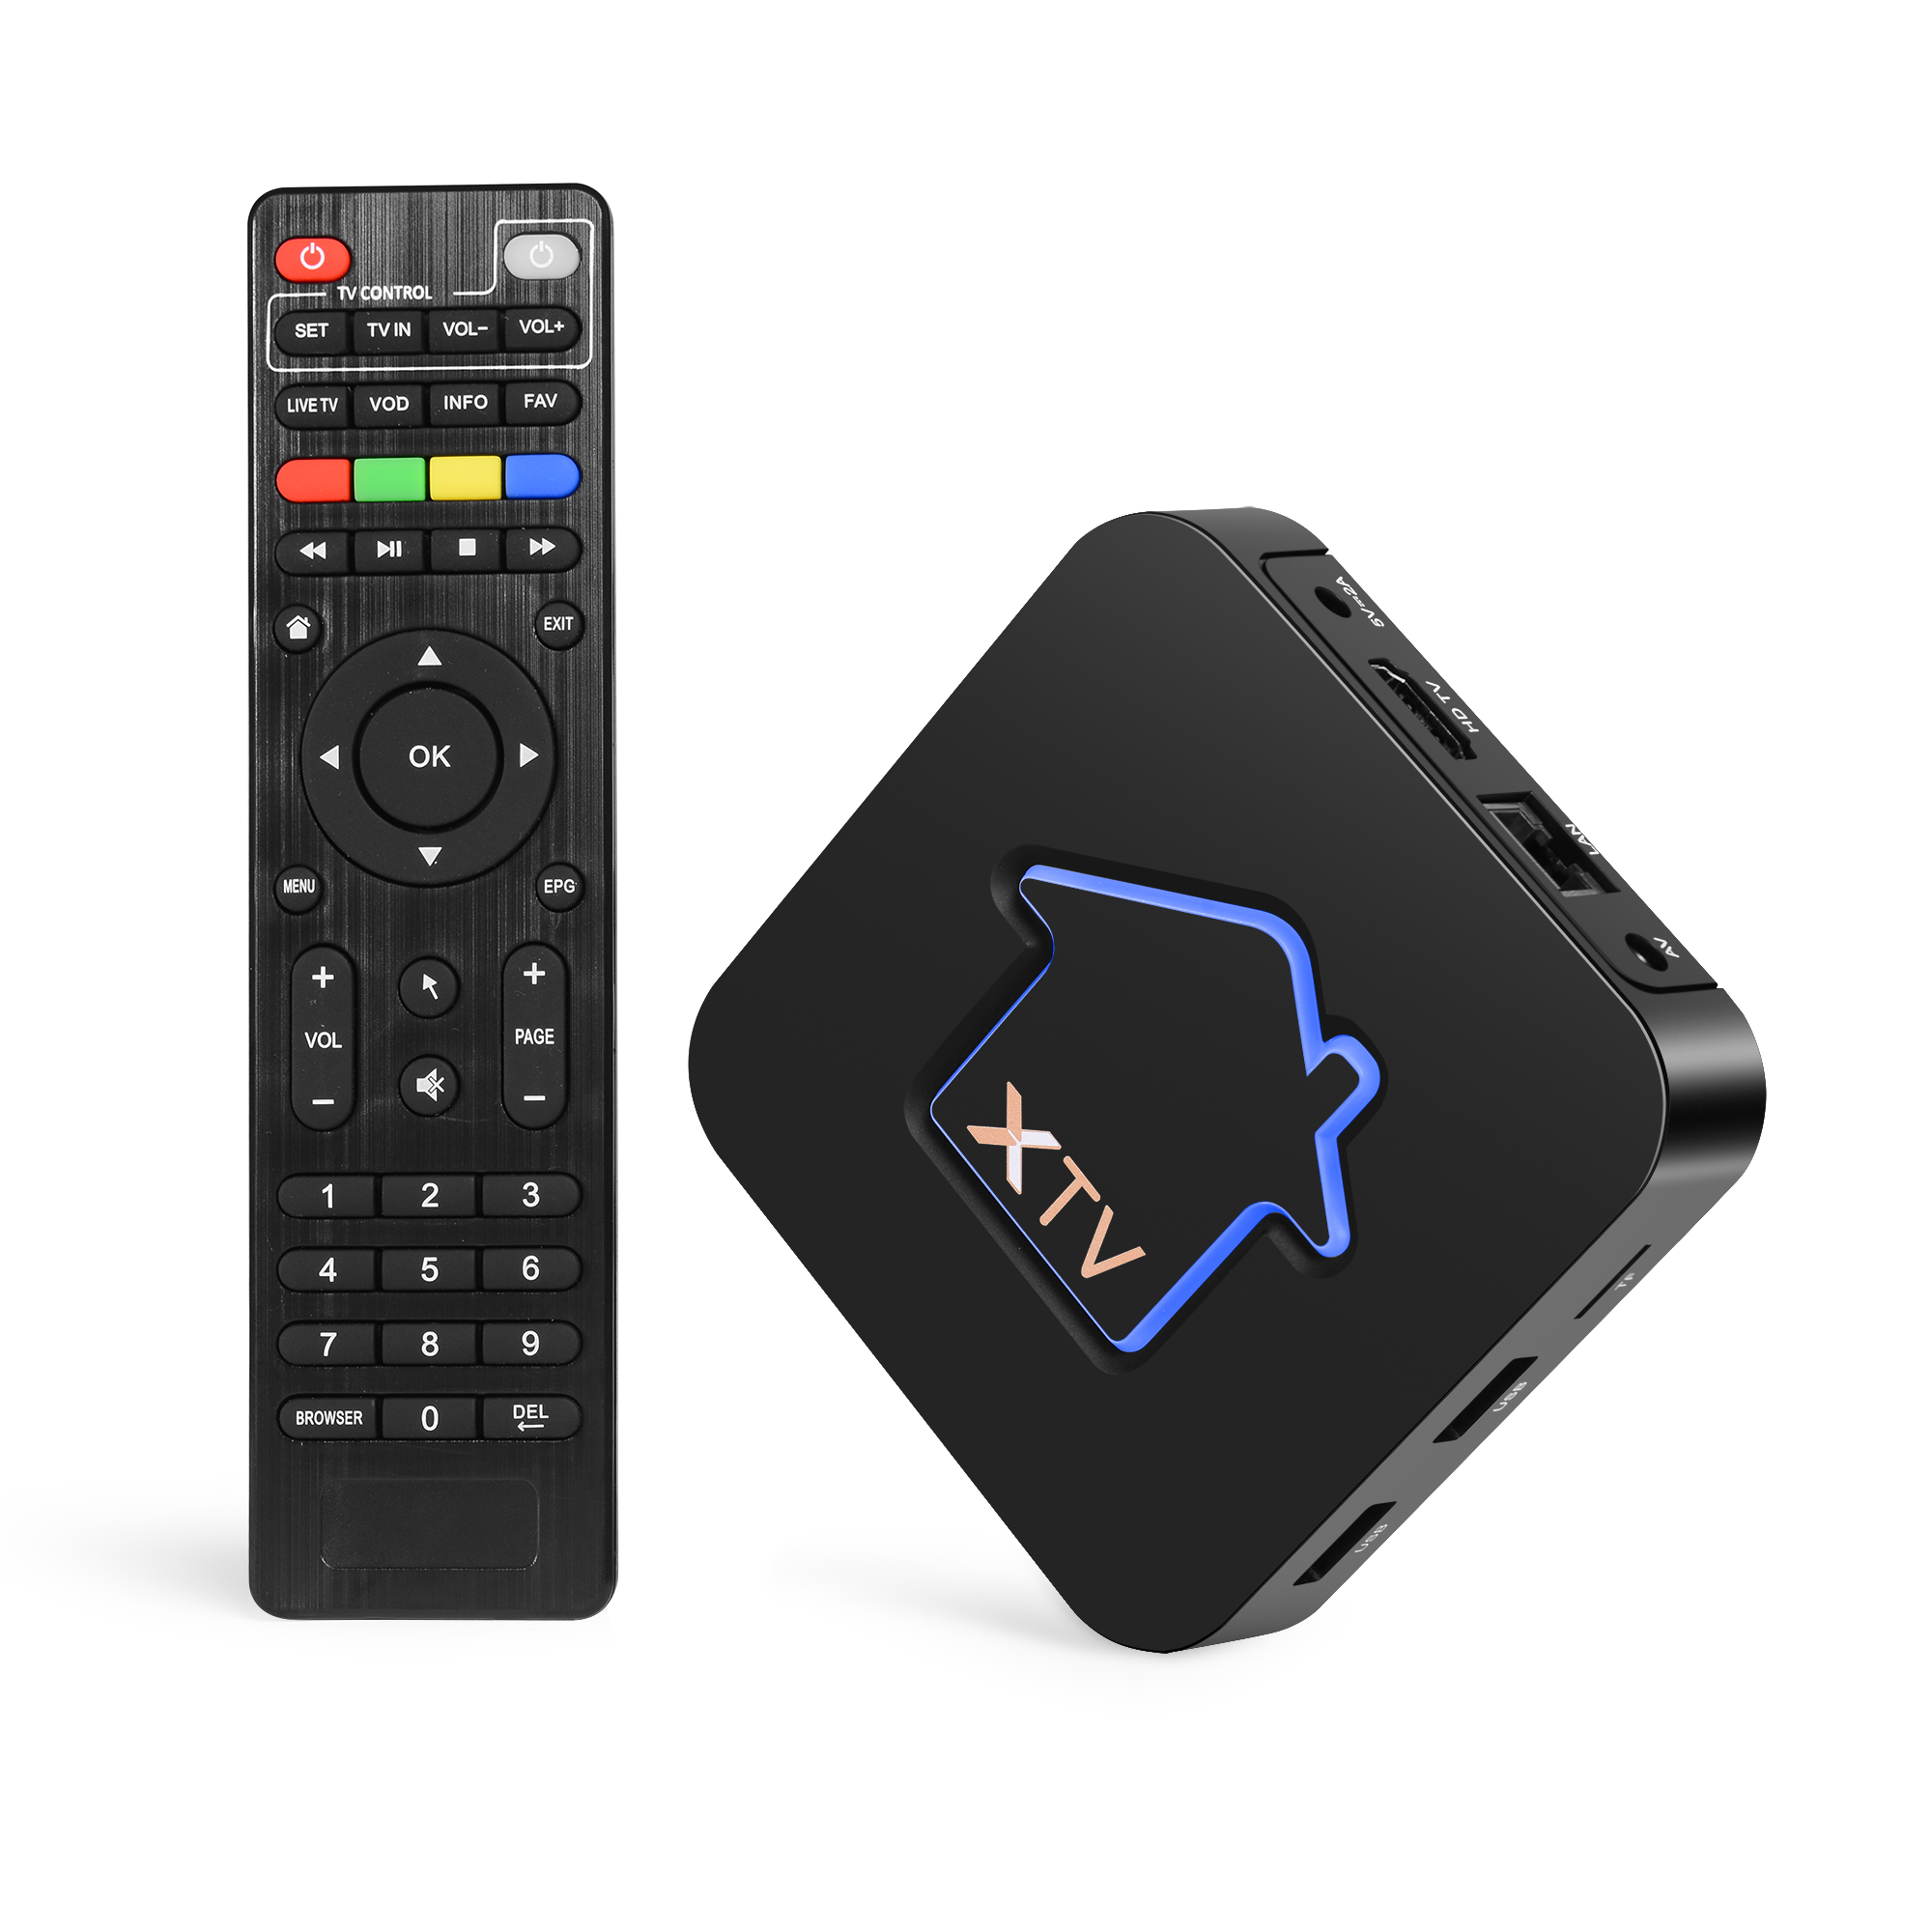 MyTV Android 7.1 IP TV Box Profreeional Stalker IPTV With Iptv Boxes Amlogic S905X Smart Set-top Box